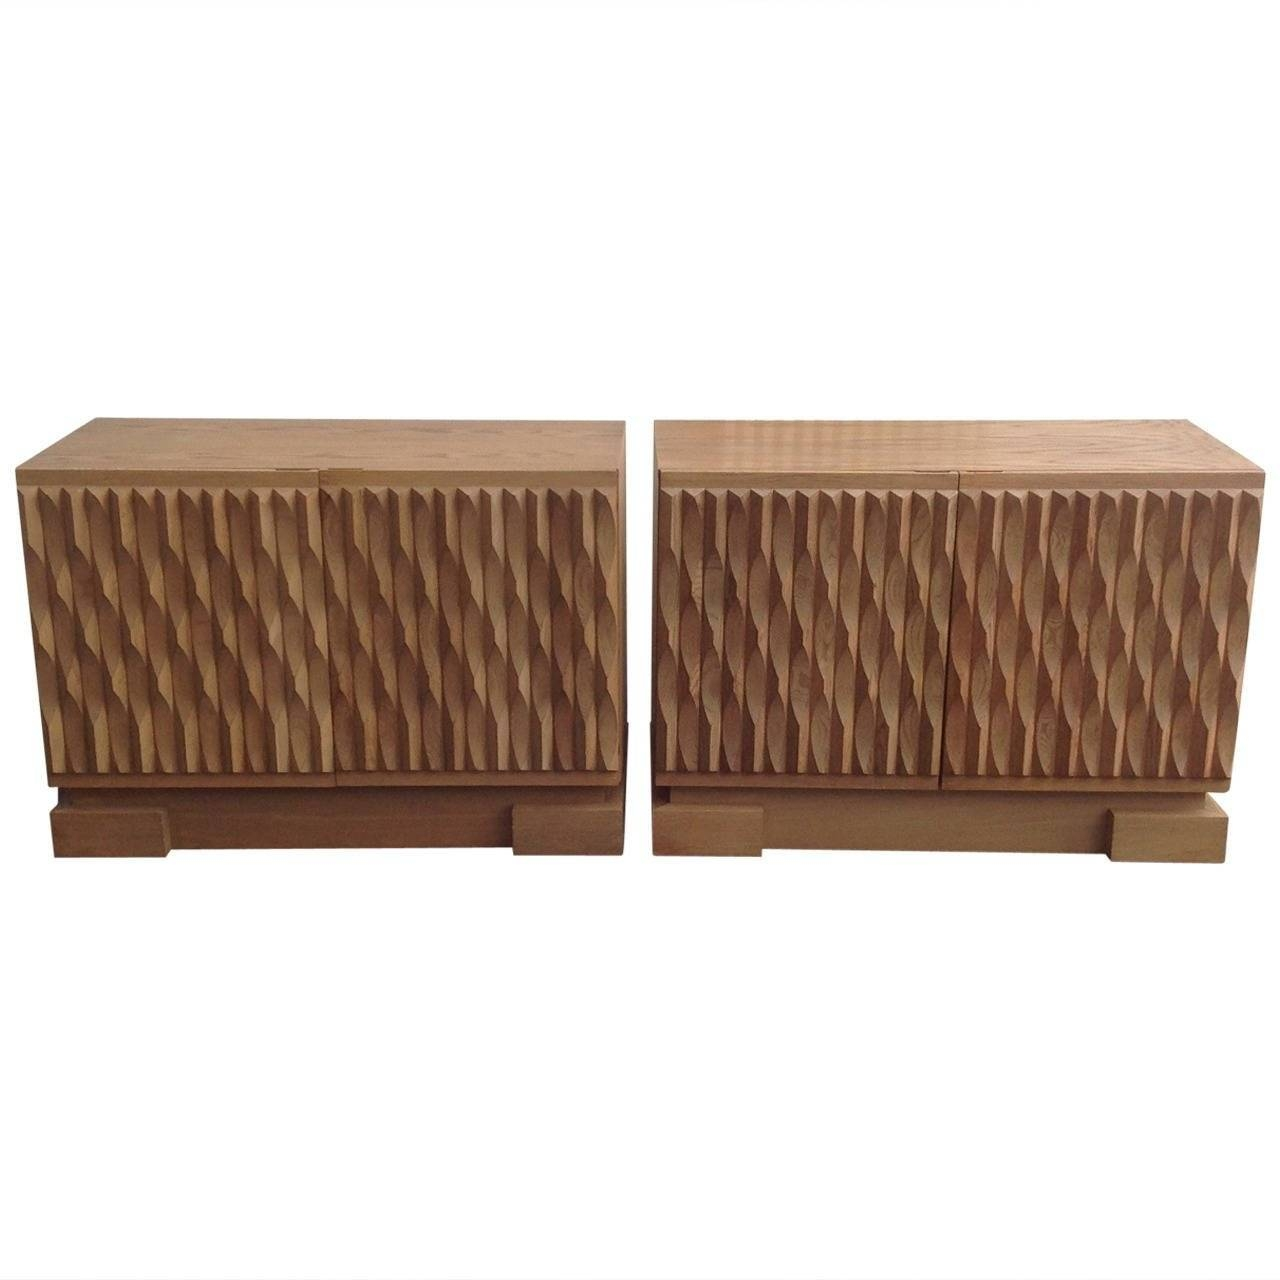 Price For 2 Belgium Brutalist Credenza Small Sideboards In Solid Within Small Sideboards (View 11 of 30)